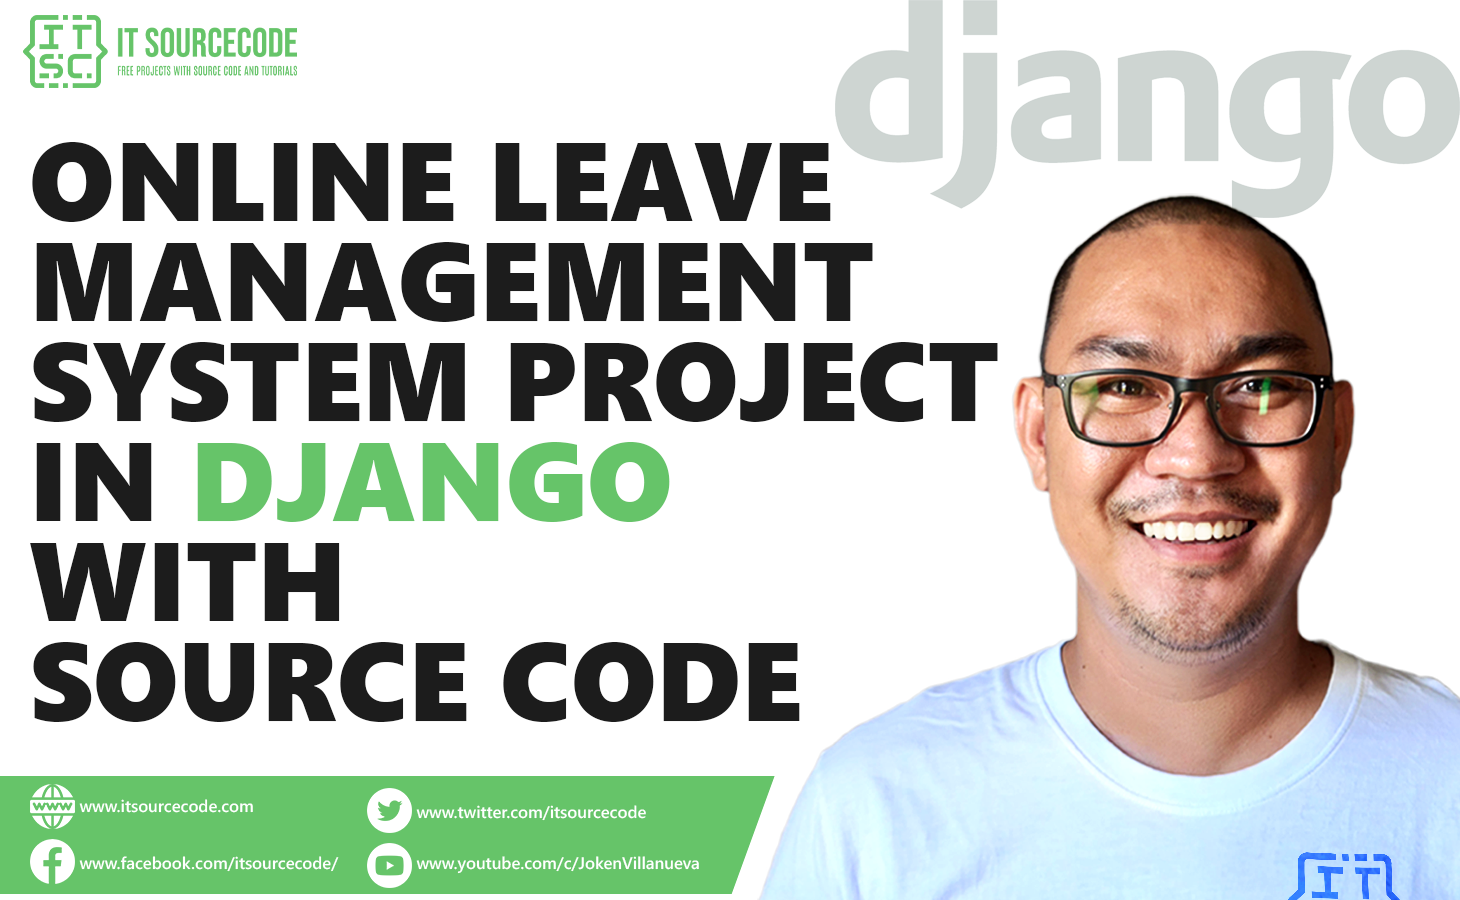 Online Leave management system project in django with source code